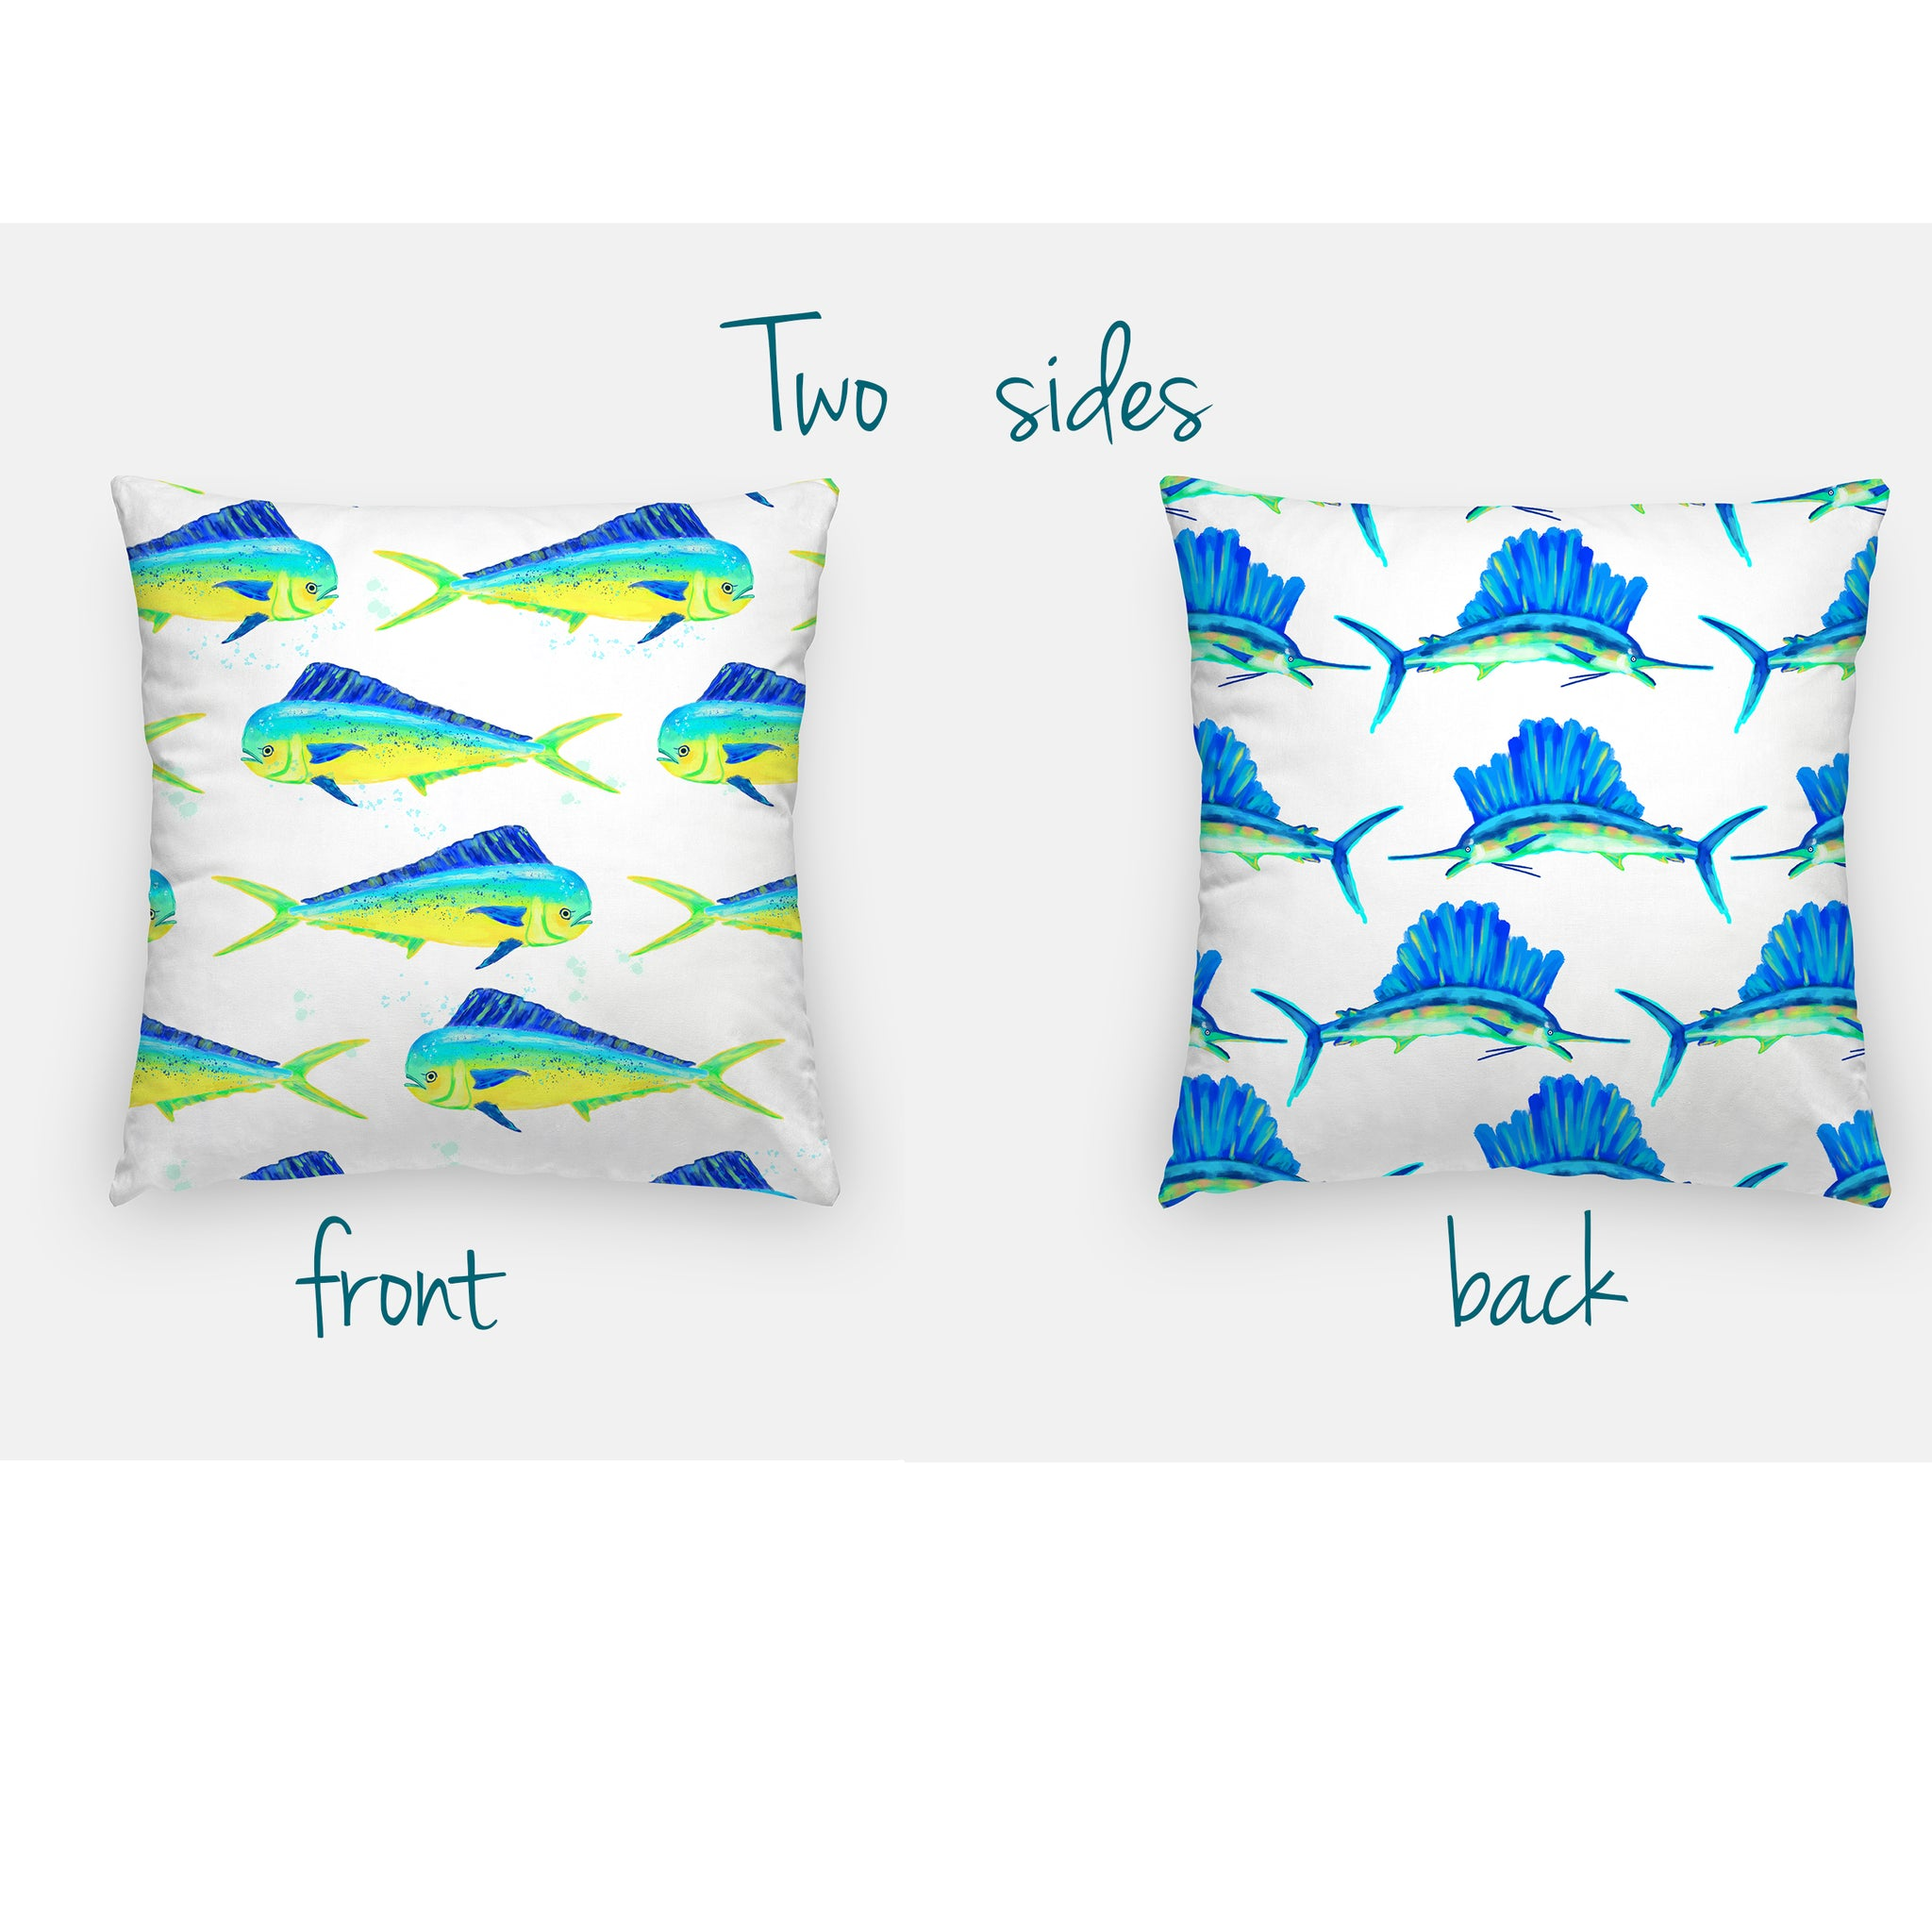 Sailfish and Dolphin 16x16 pillow